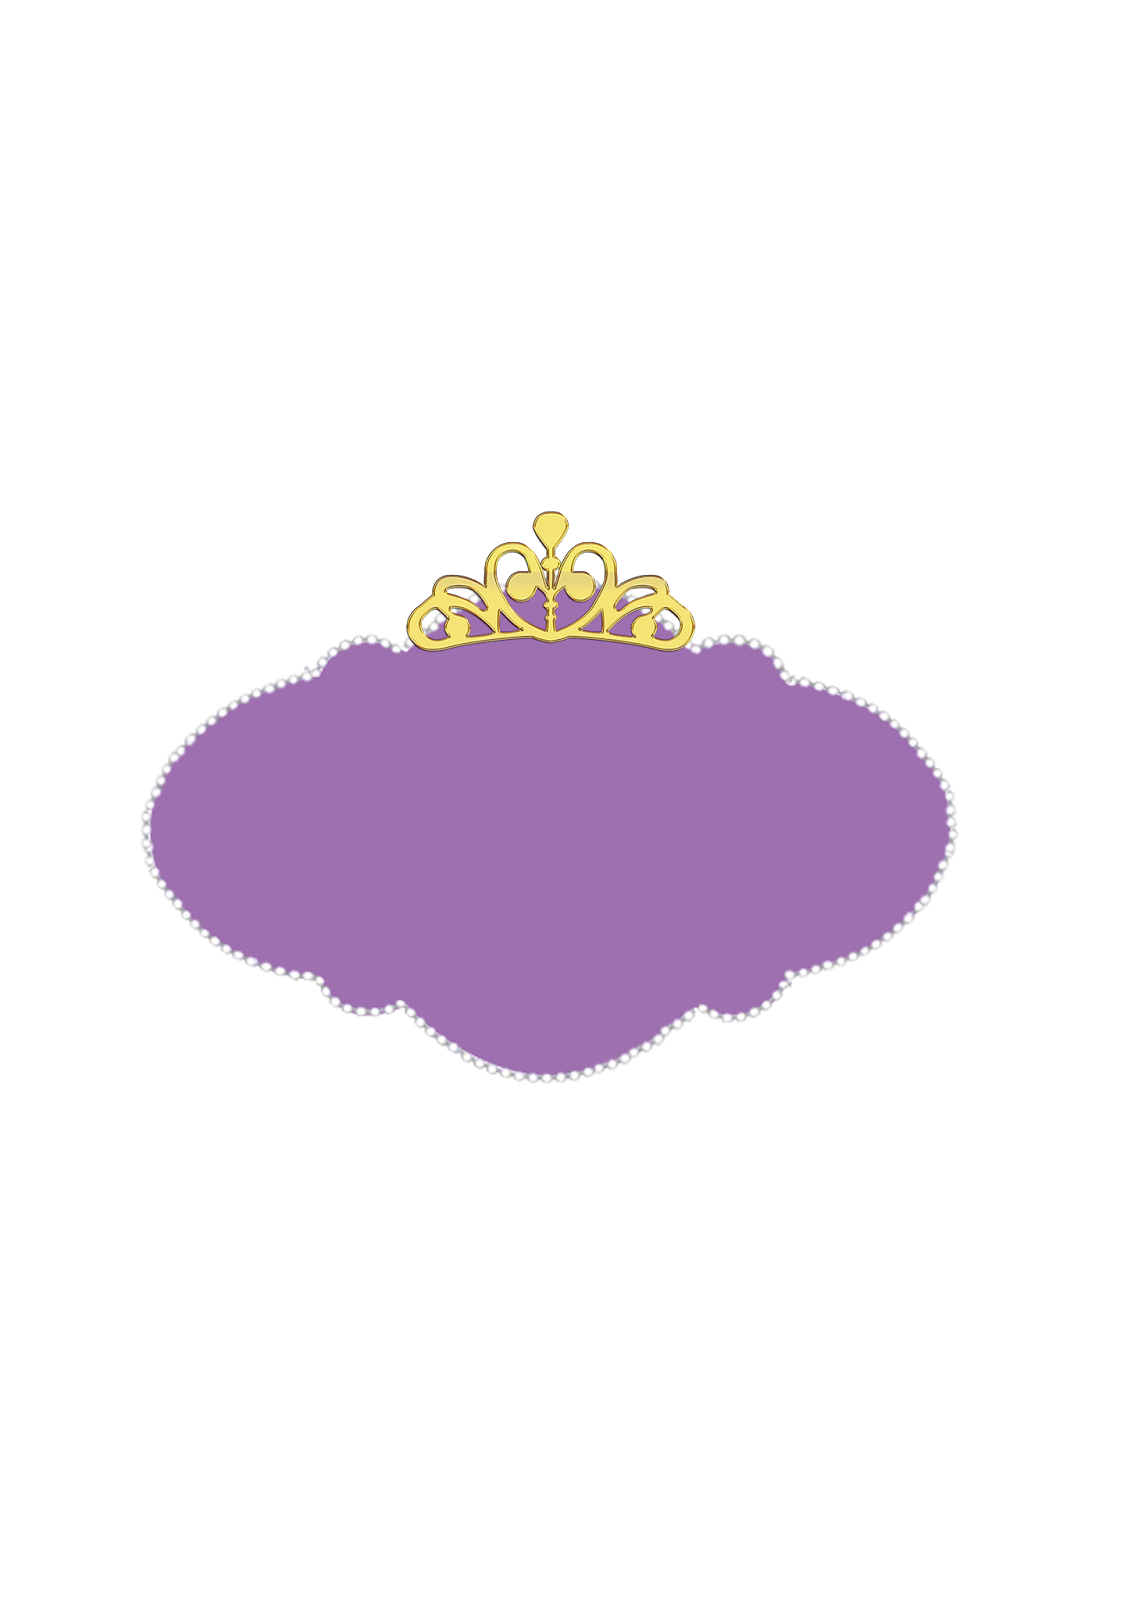 Pageant crown clipart png free Sofia The First Crown Clipart (37+) png free